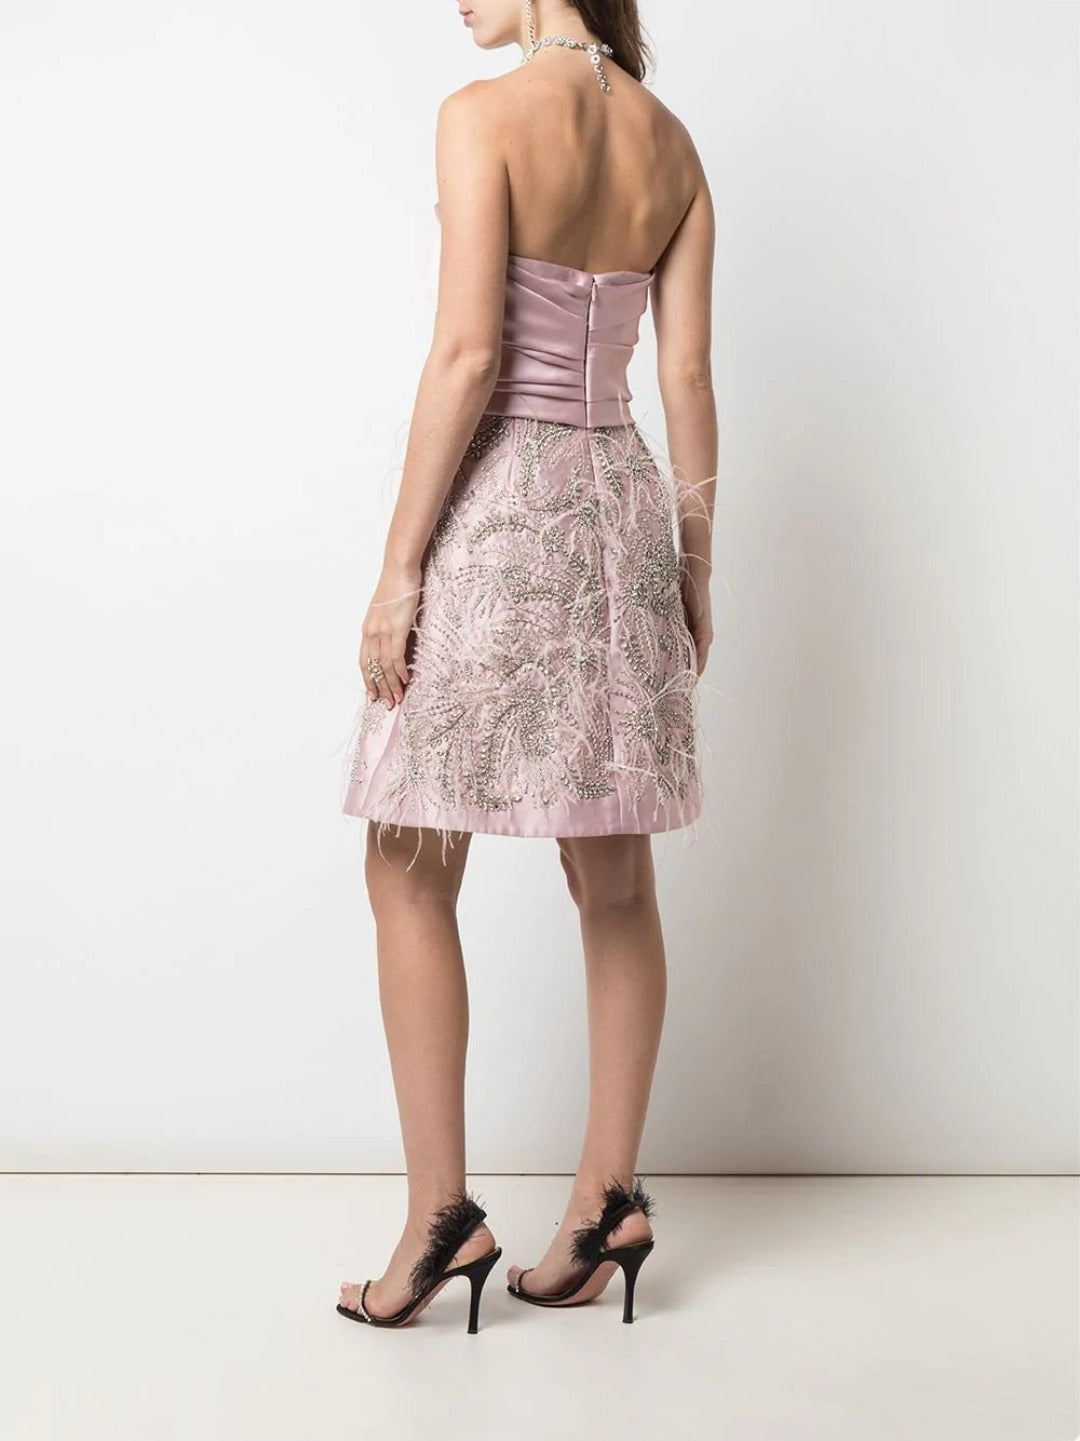 Strapless Draped Neckline Mini Cocktail Dress